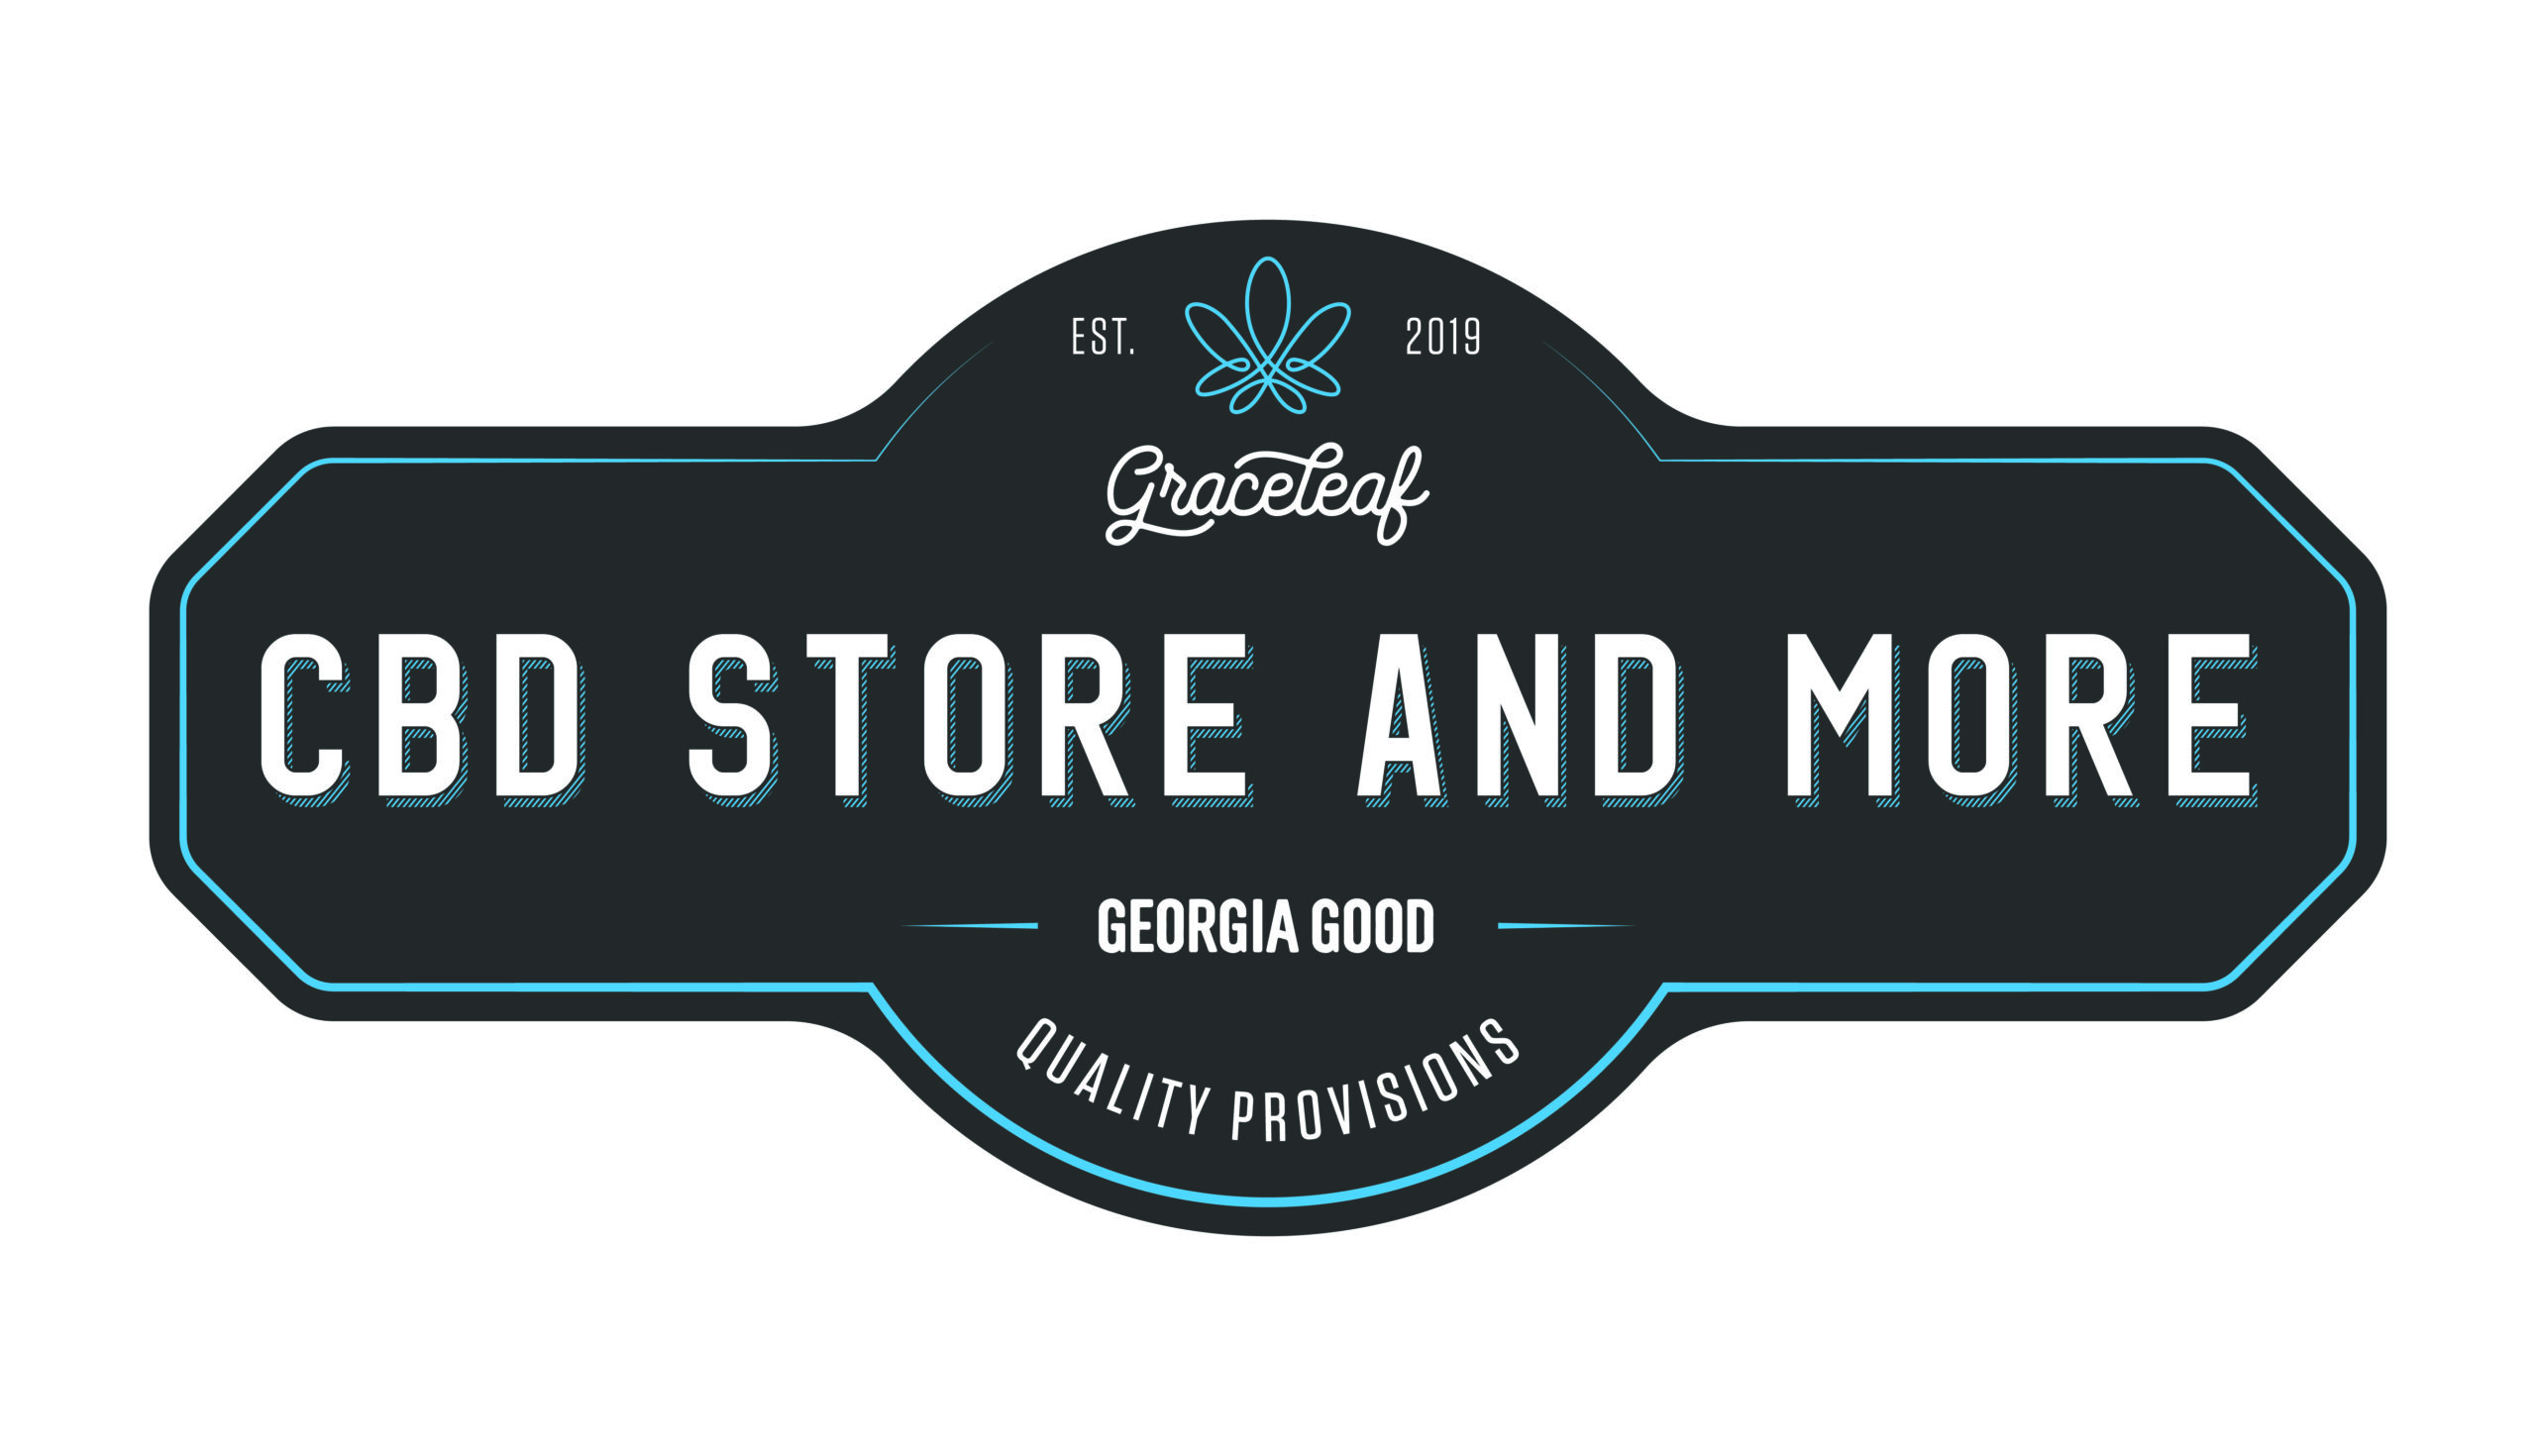 CBD Store and More